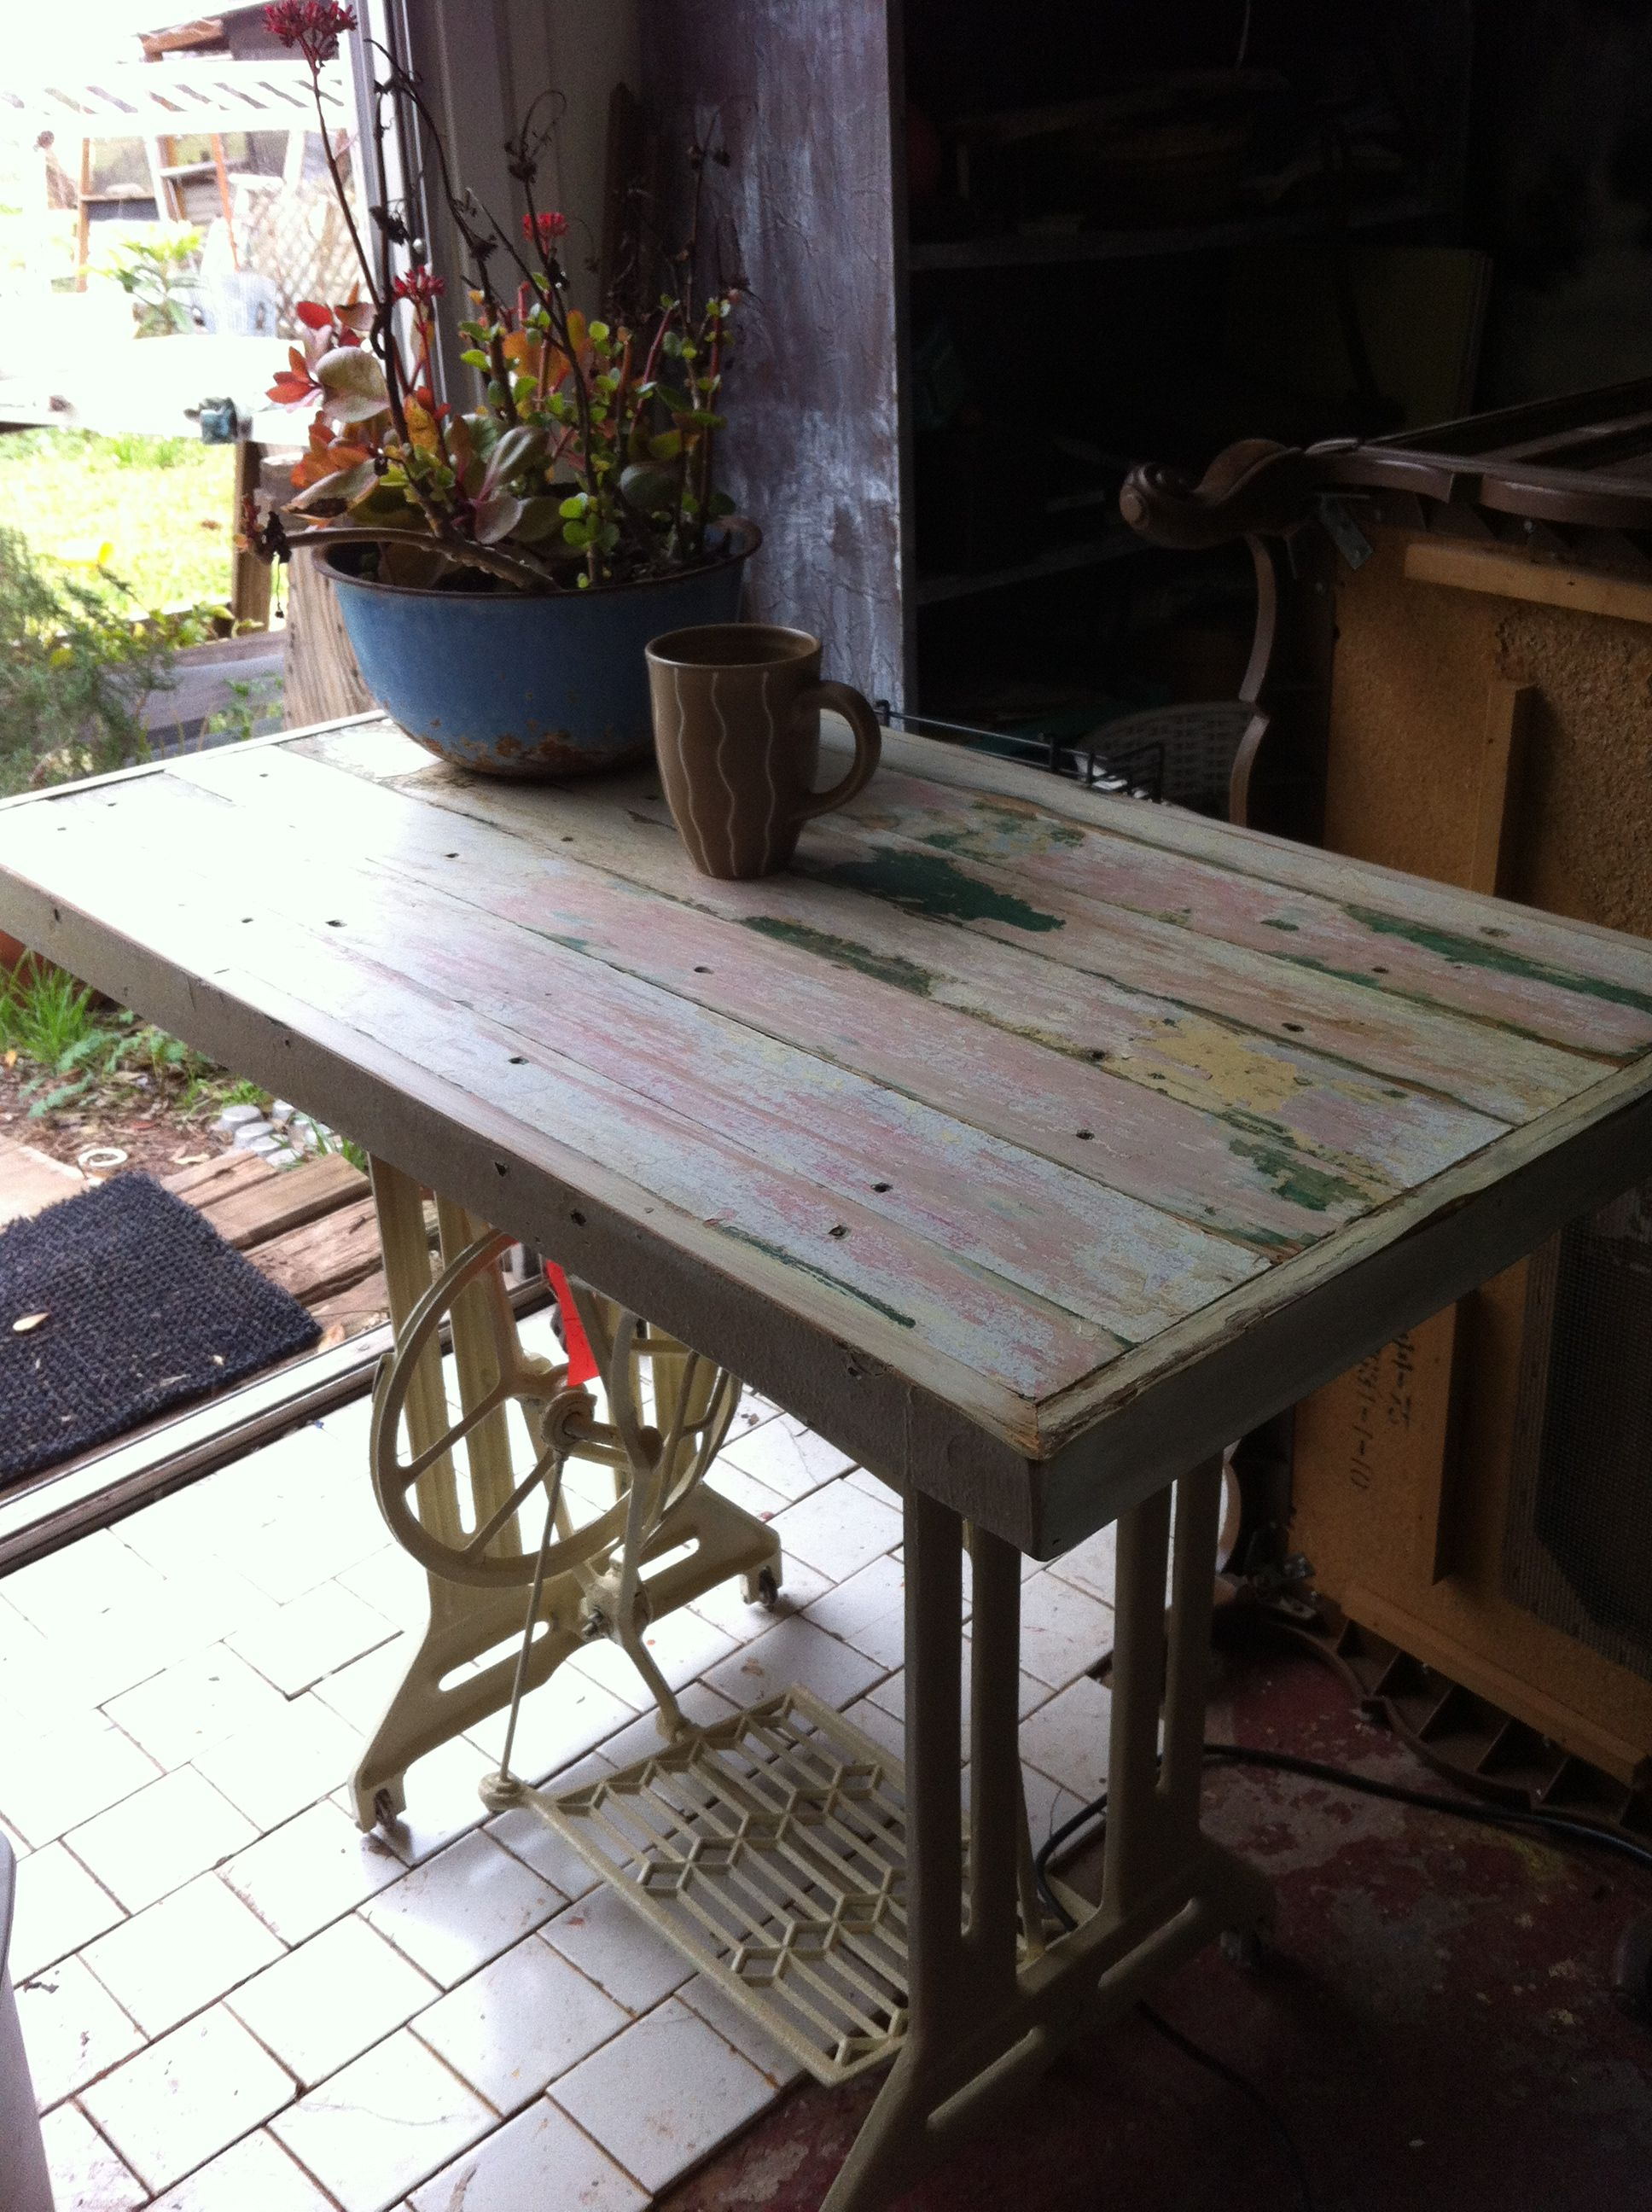 Design Sewing Machine Base Table handy little table made from old sewing machine base and wood the walls of an